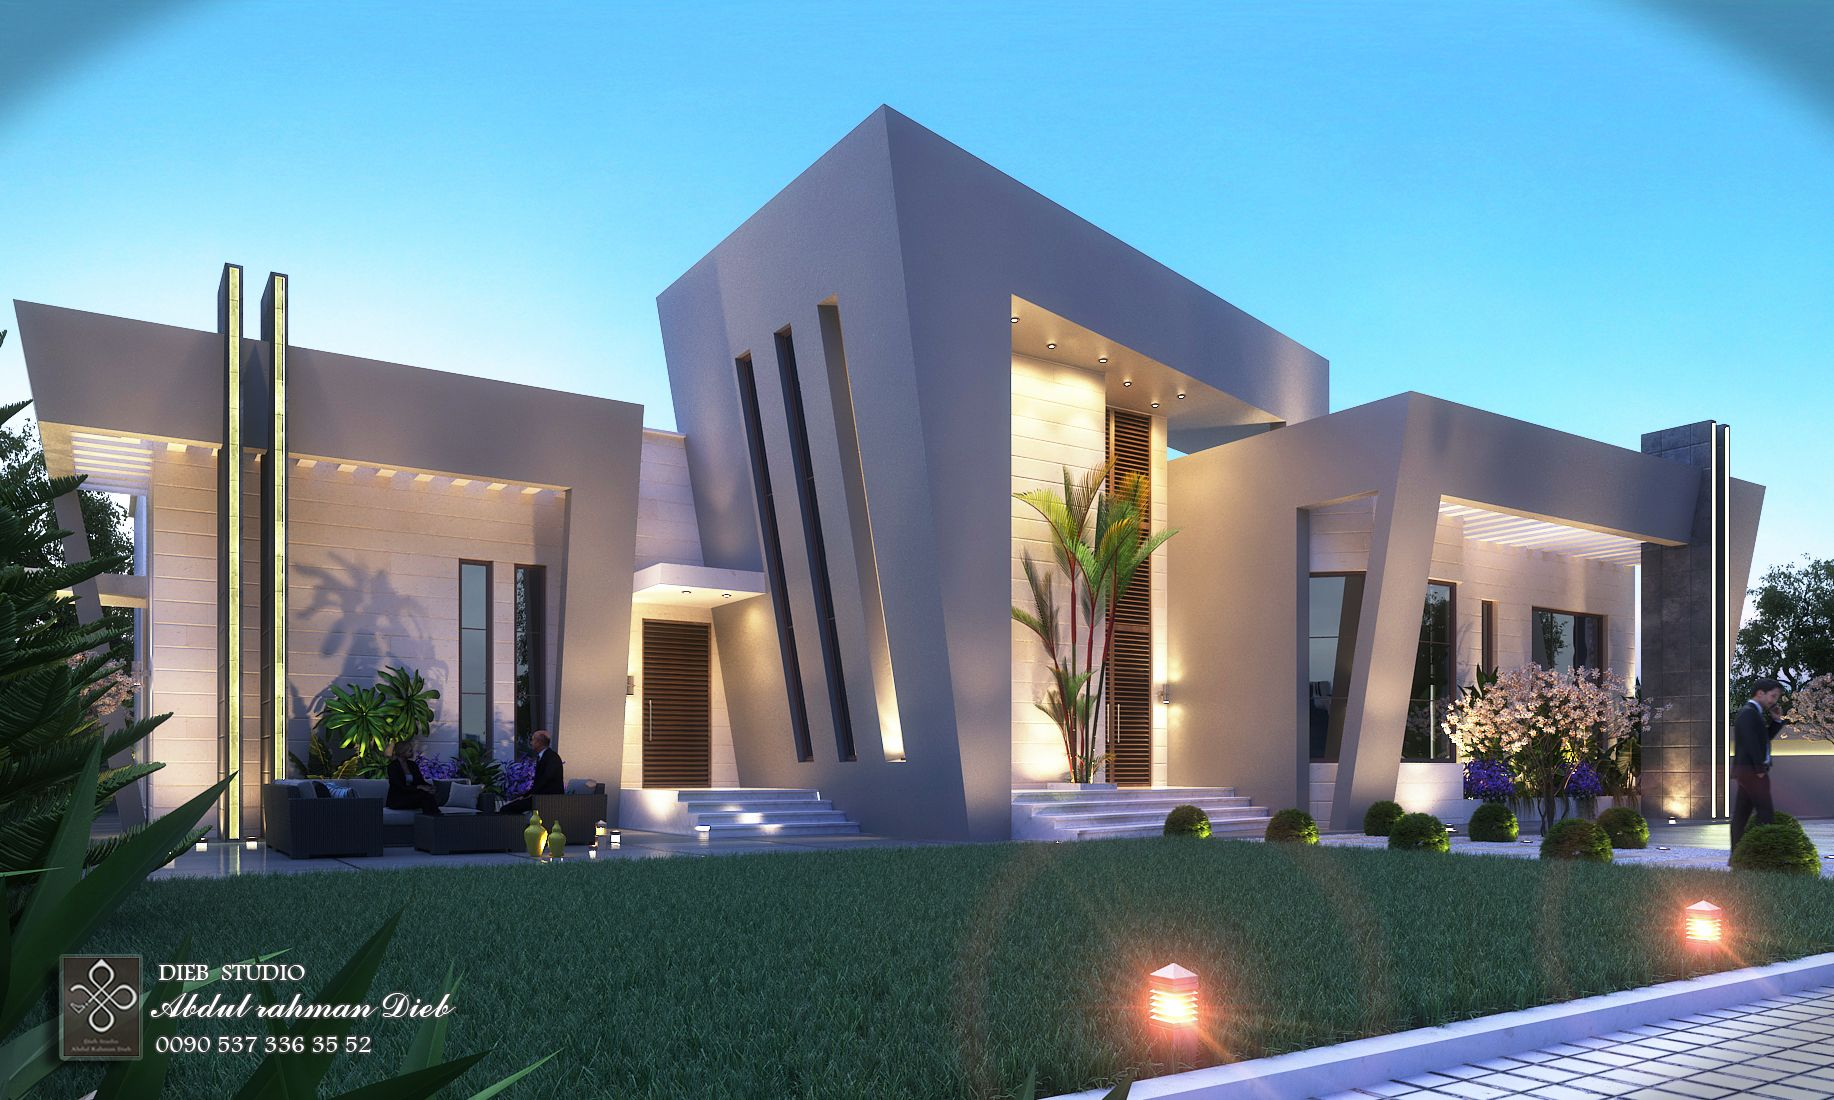 Decoration Villa Moderne Pin By Dieb Studio On Dieb Studio Exterior Designs تصميم خارجي